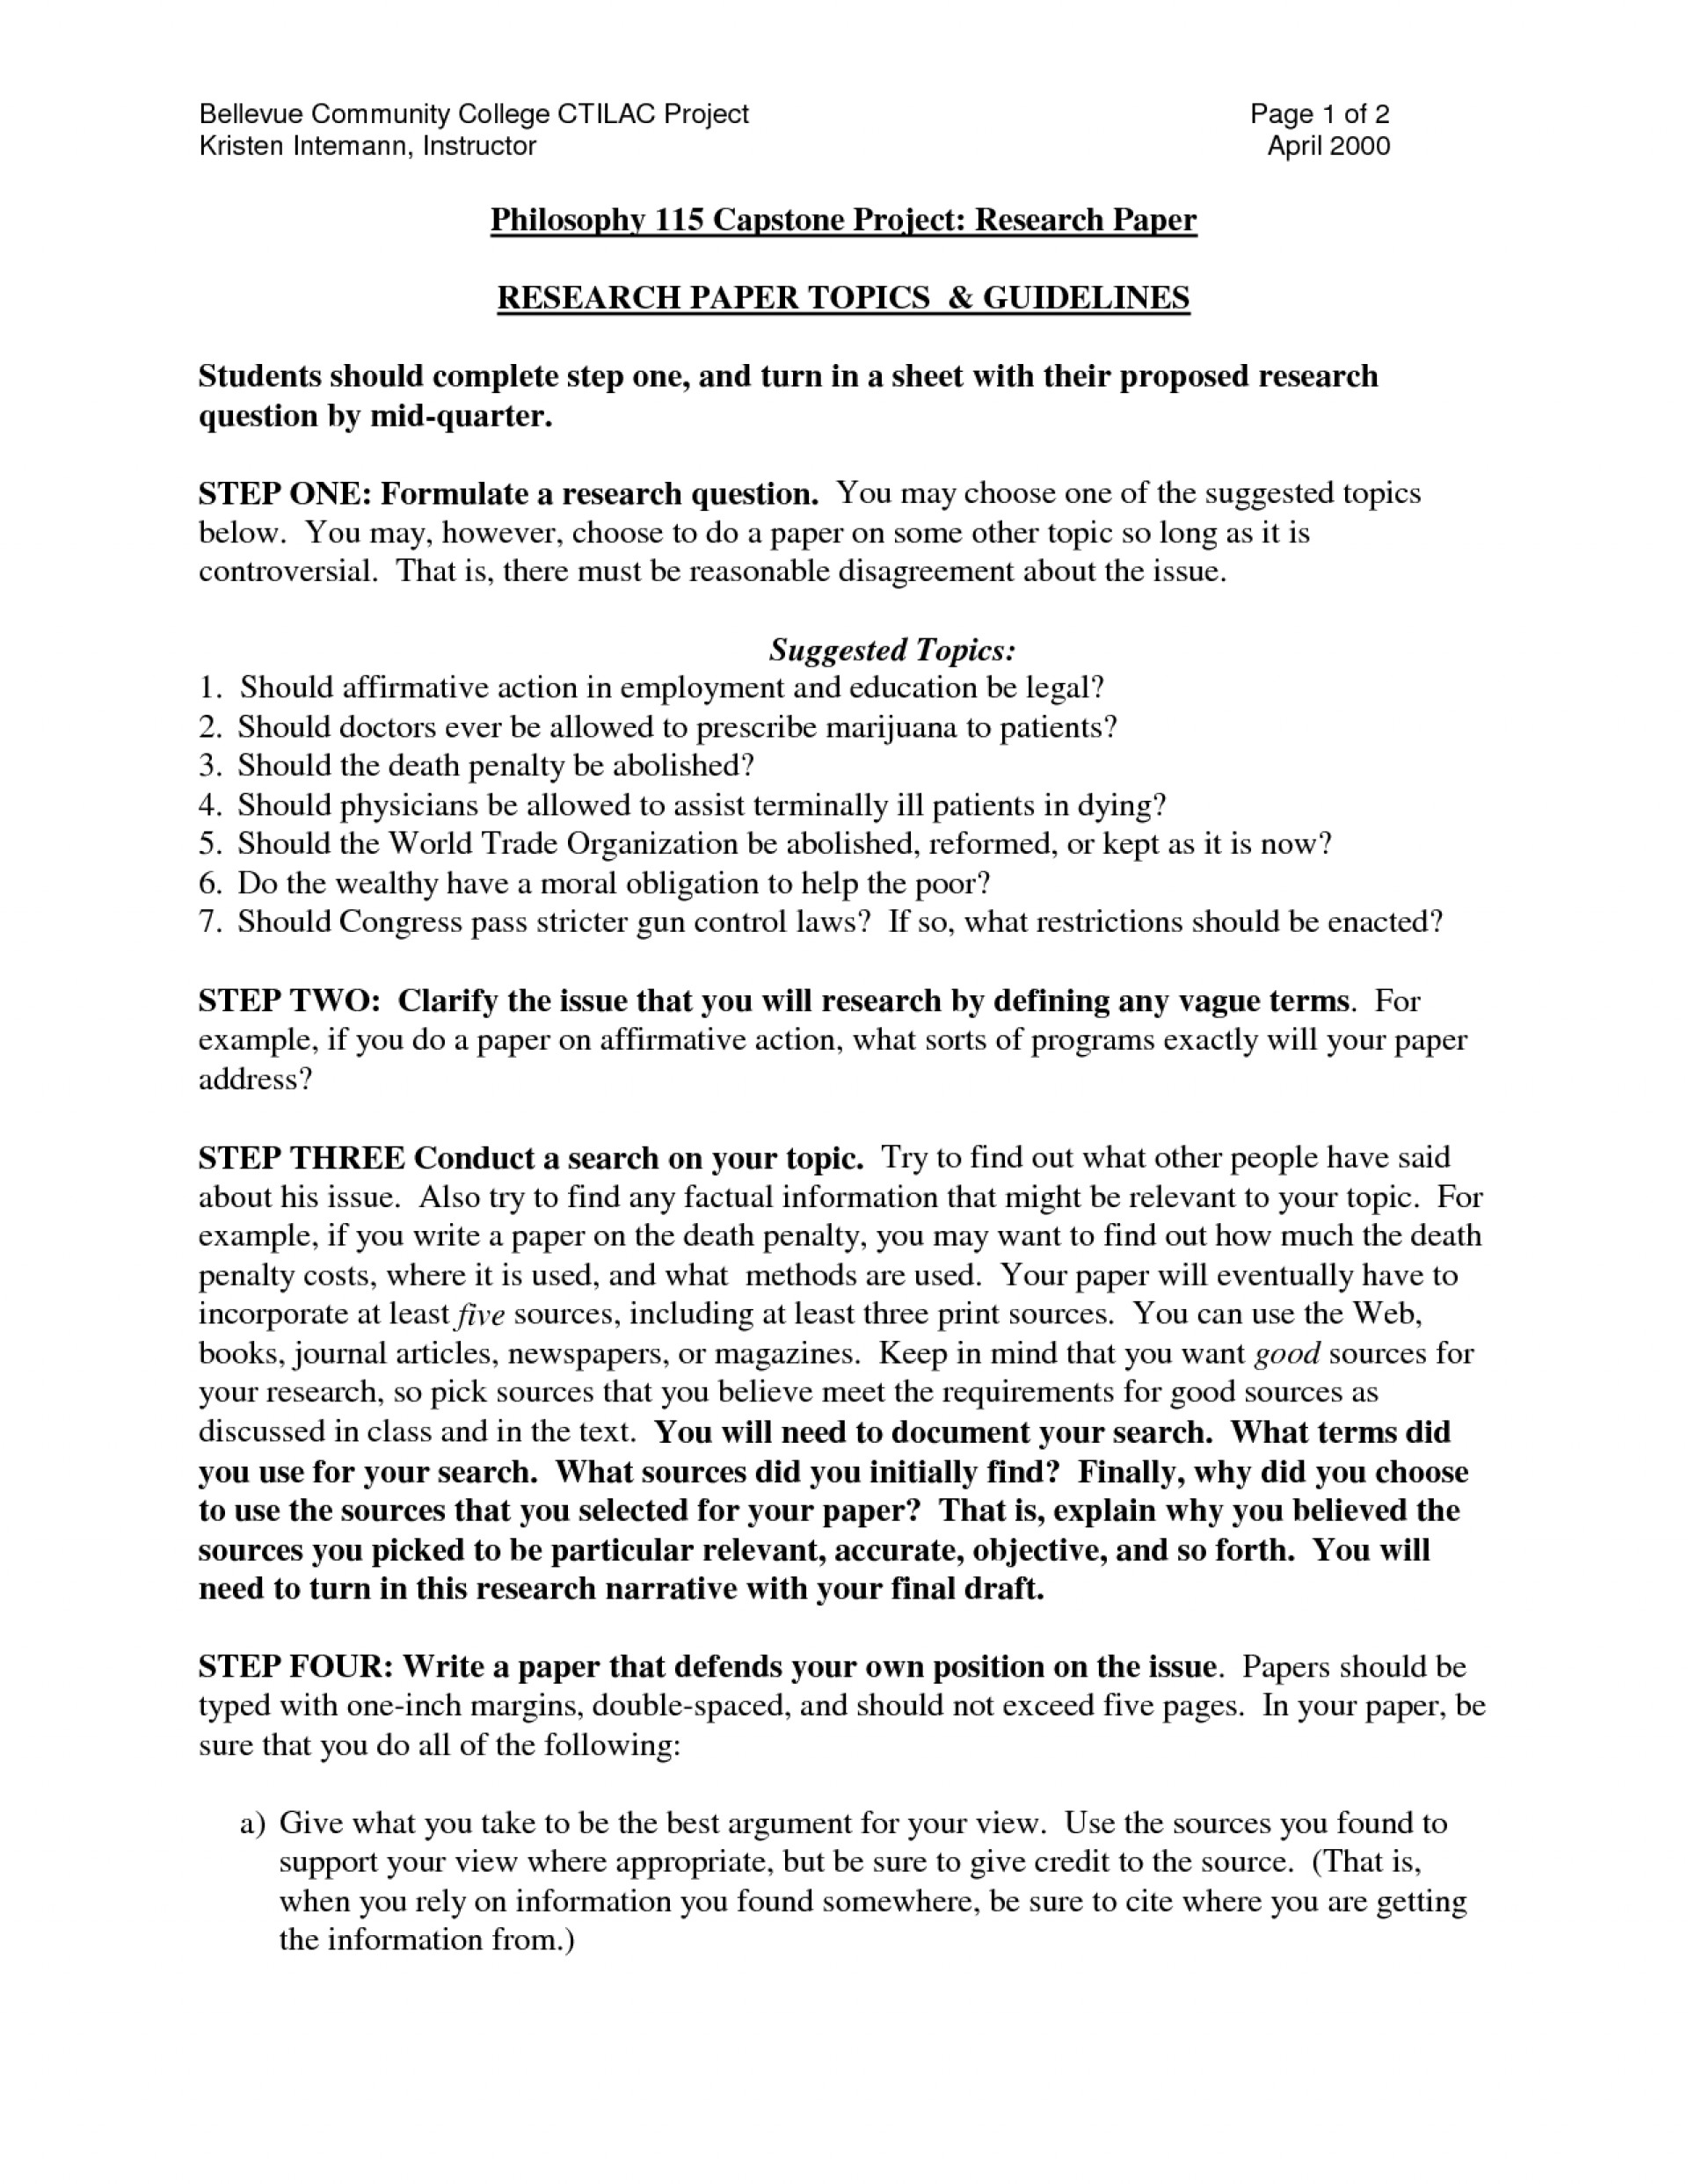 003 Yg32qgw3ao Research Paper For Wondrous College Topics English Class Ideas Sample Students 1920